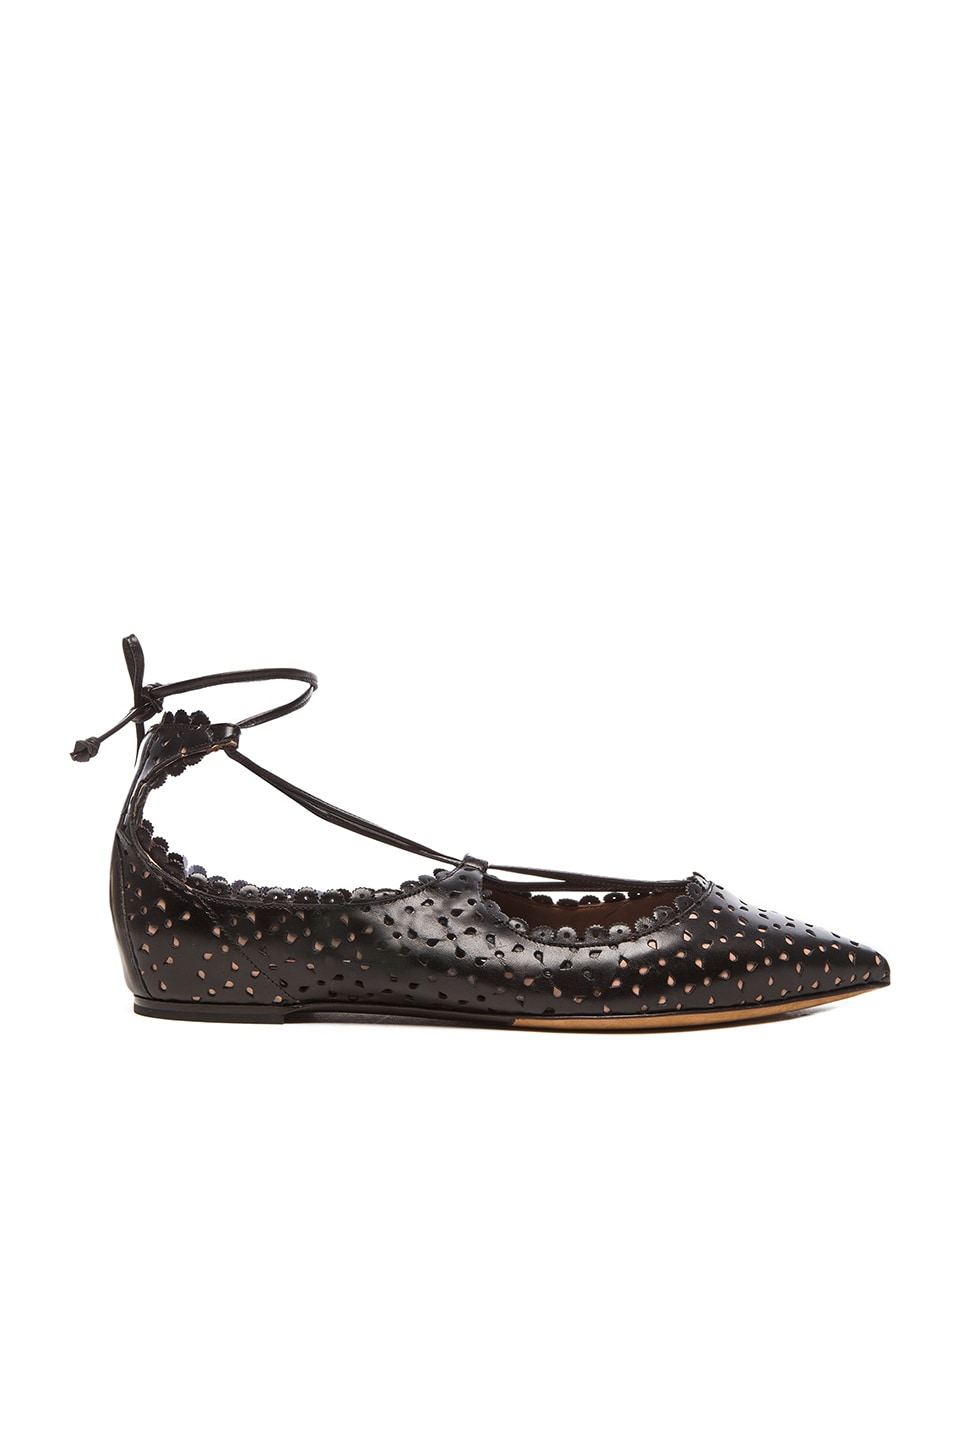 Image 1 of Tabitha Simmons Leather Willa Flats in Black Perforated